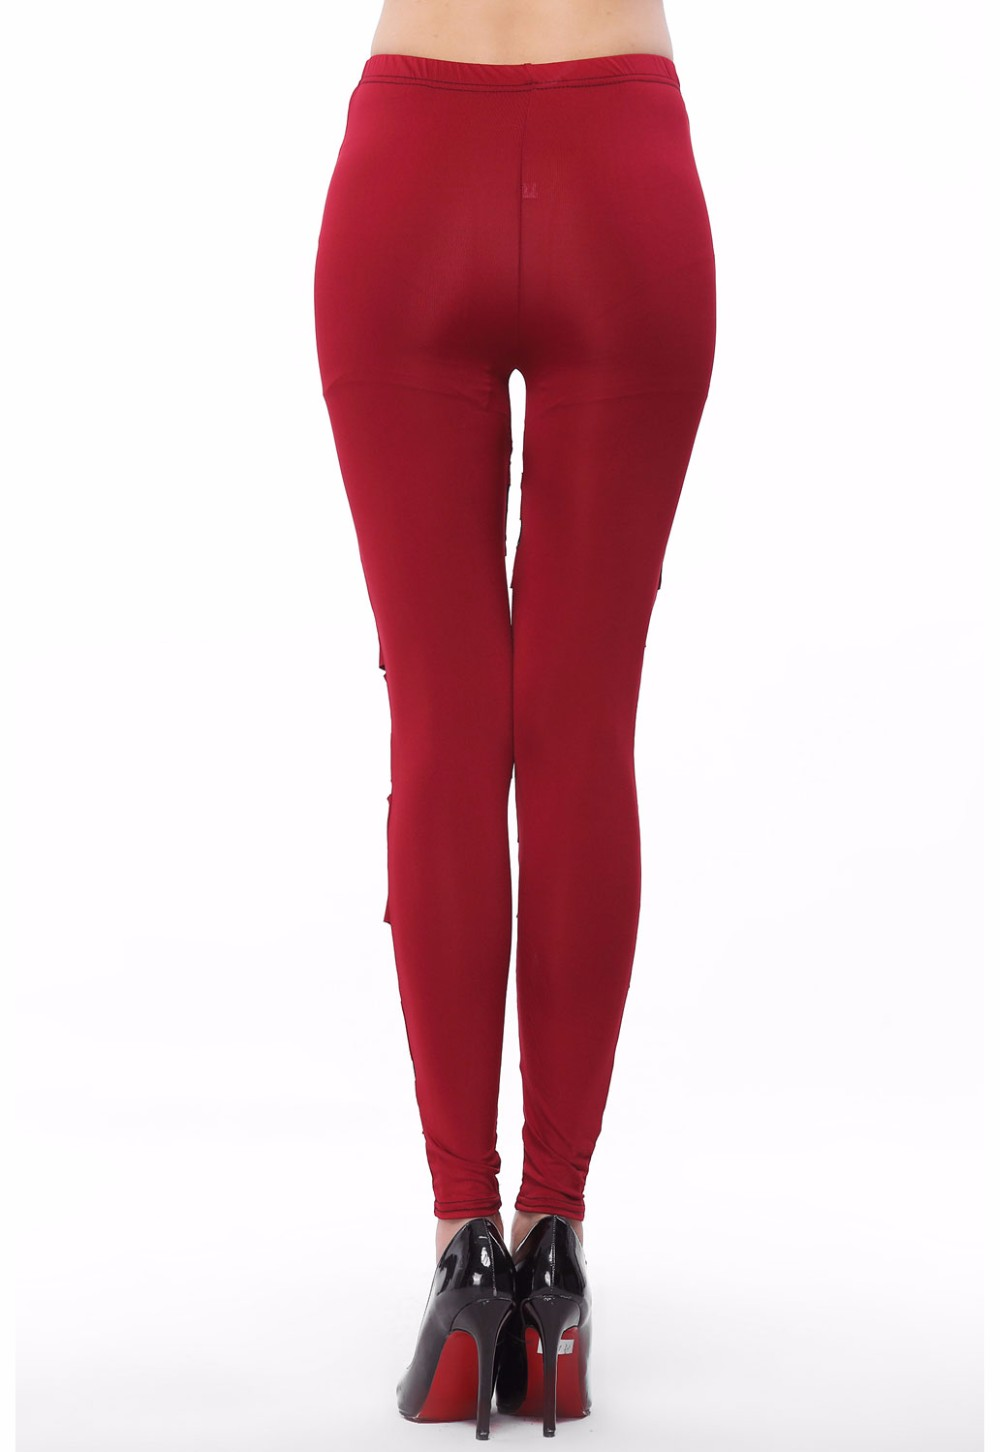 Red-Leggings-with-Sexy-Insight-LC7825-3-3